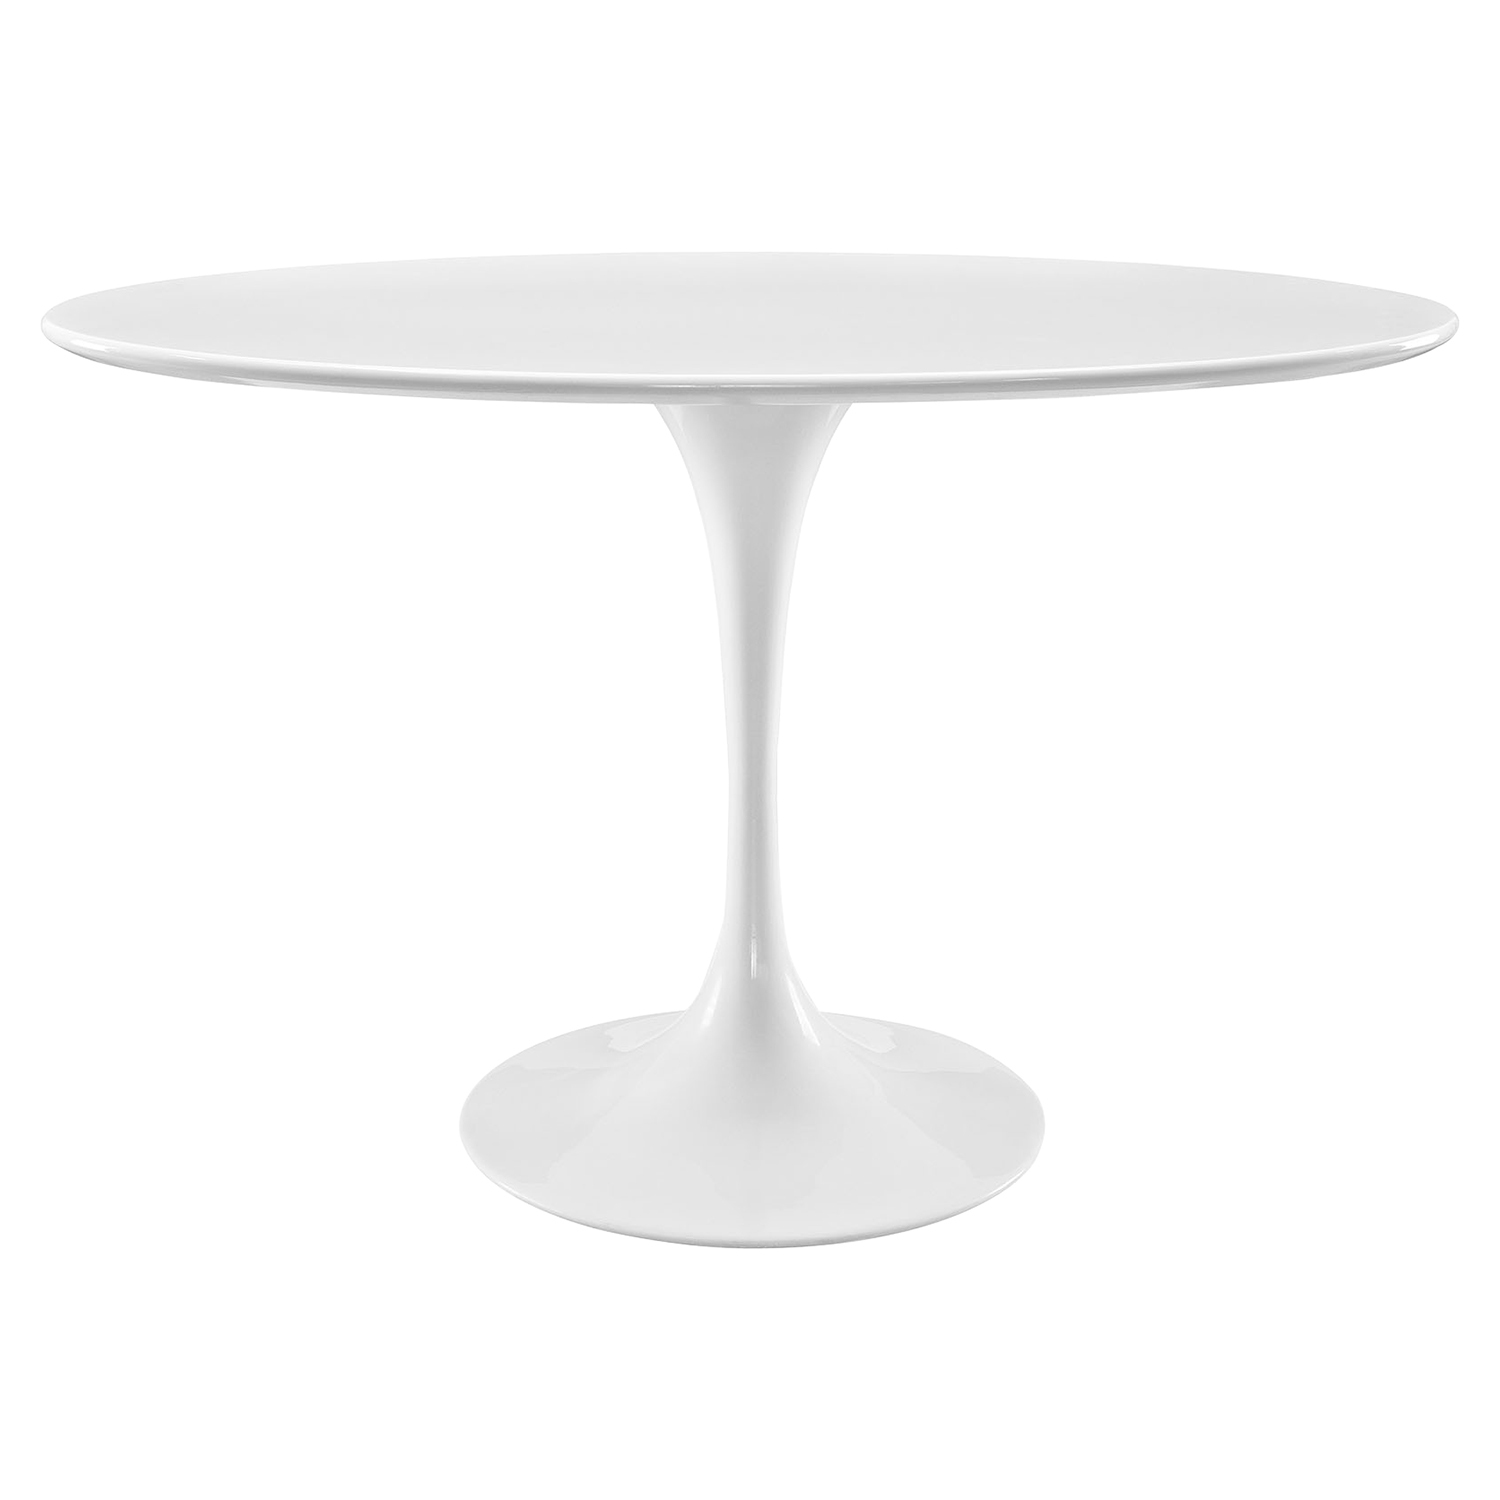 "Lippa 48"" Oval Dining Table - Wood Top, White - EEI-2017-WHI"